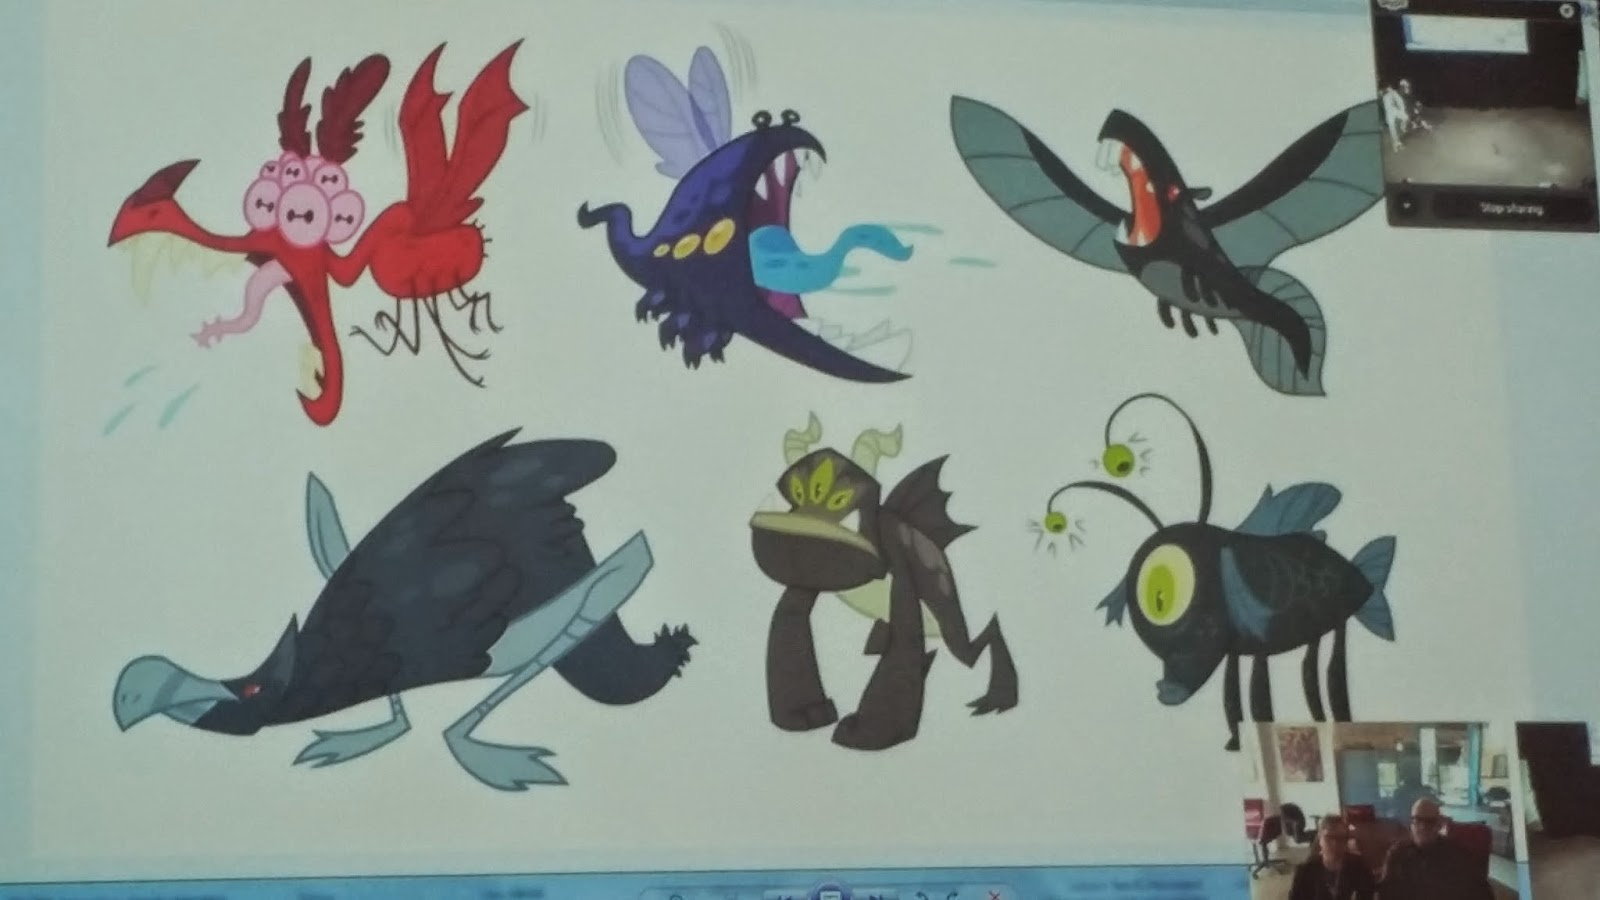 Equestria Daily Mlp Stuff Season 5 Concept Art At Ponycon